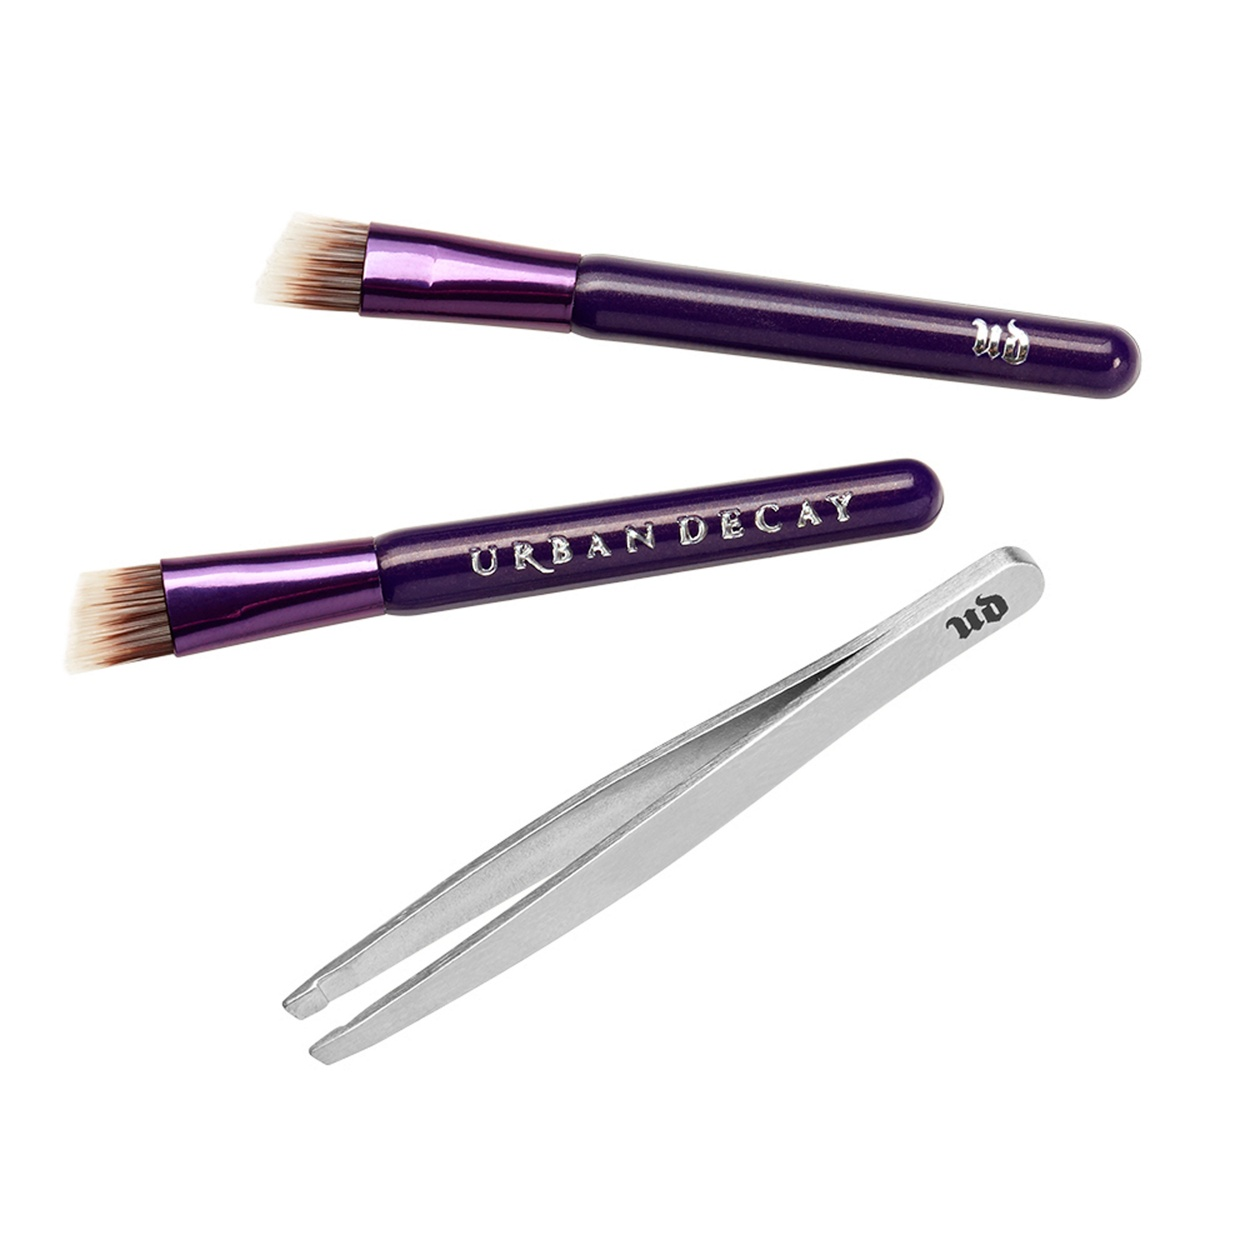 Urban Decay Brow Box - Brown Sugar | Debenhams